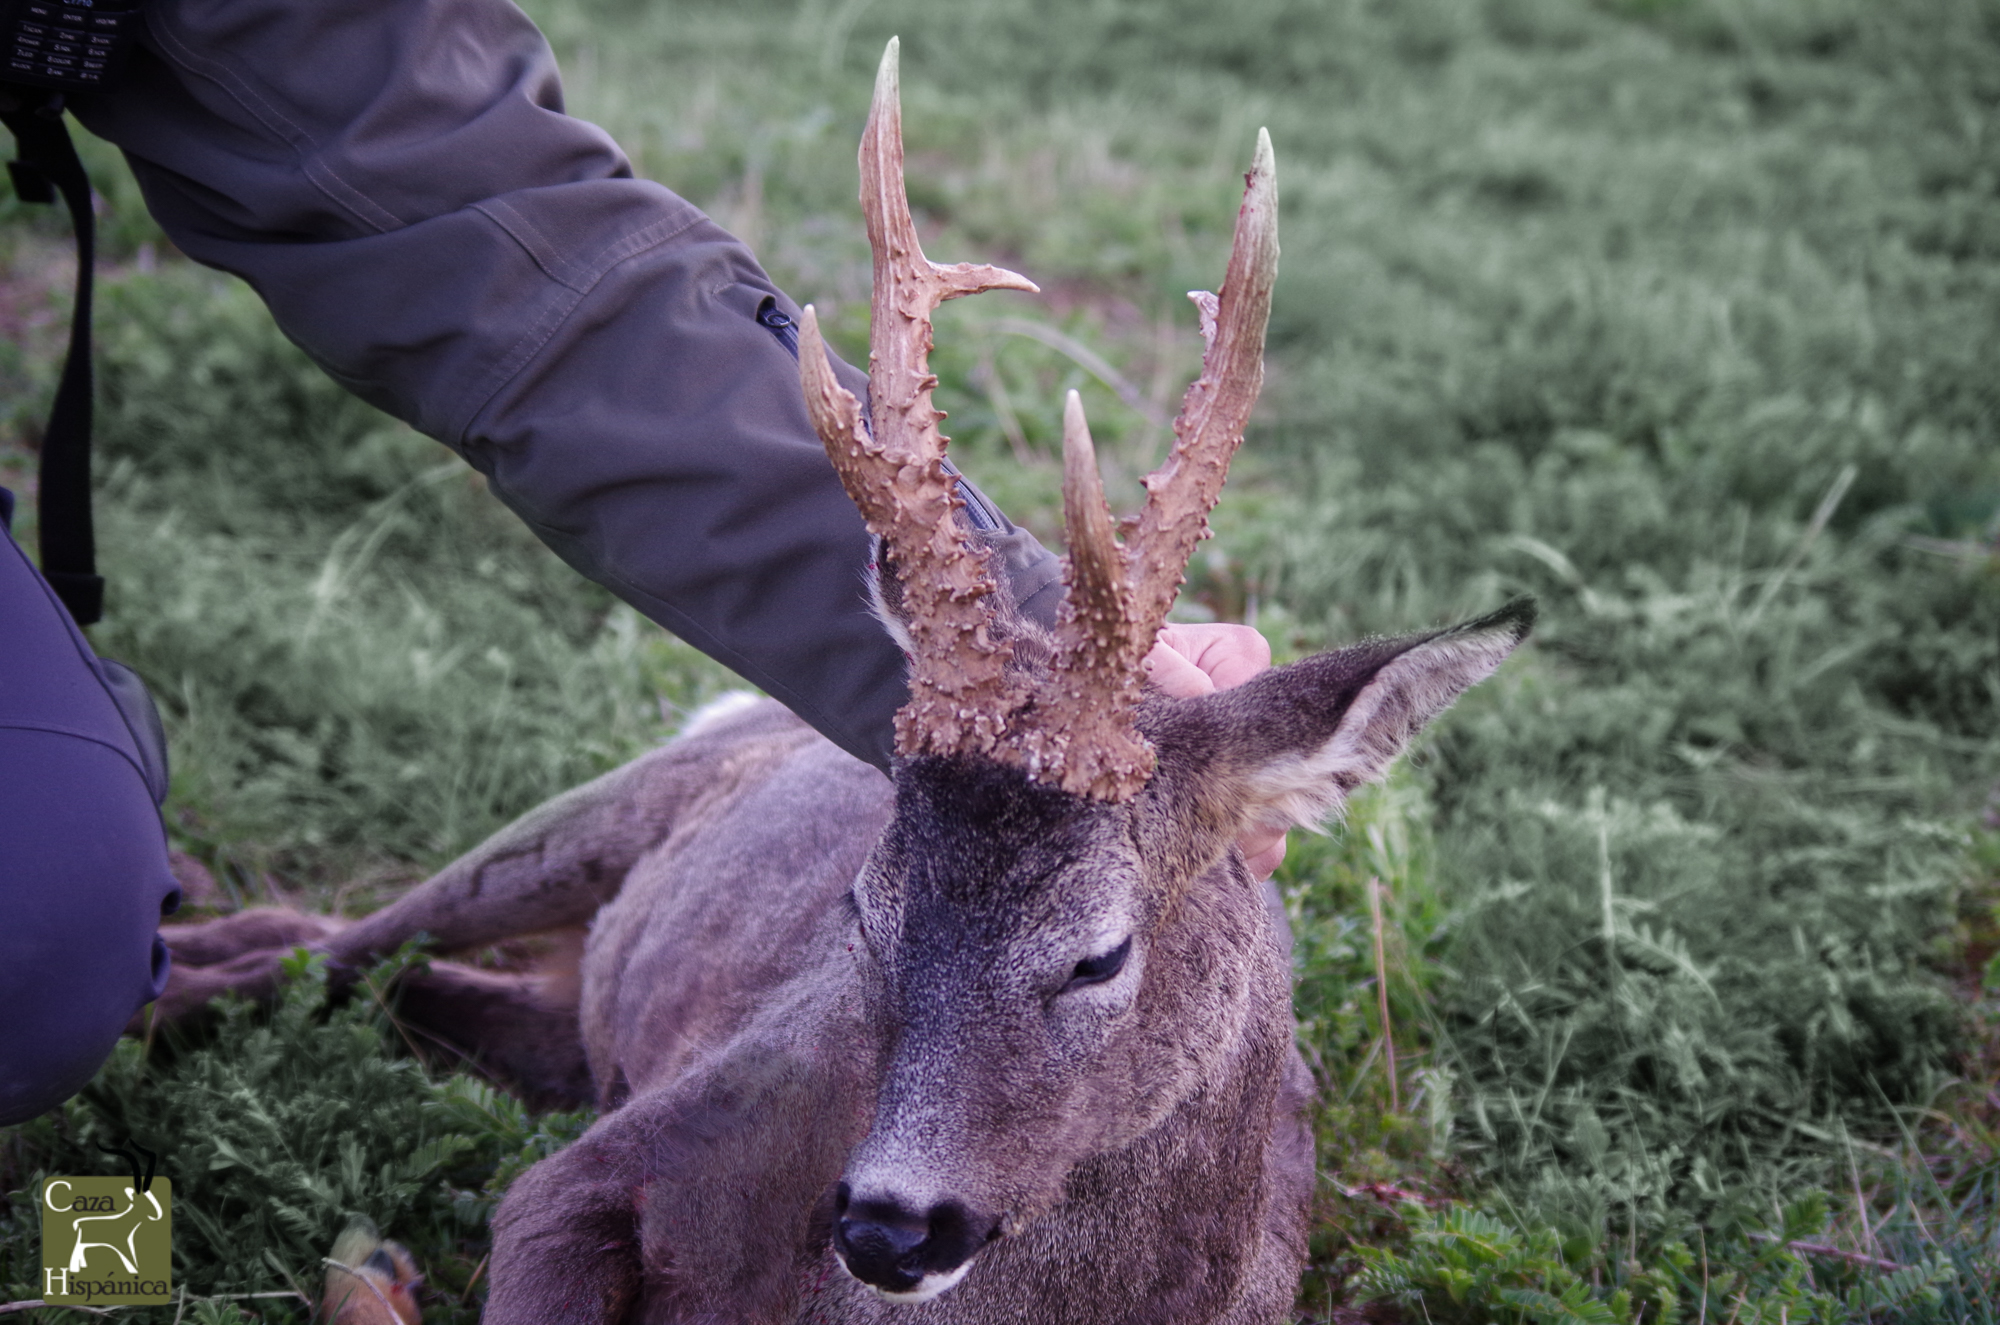 Hunting the European Roe deer in Spain